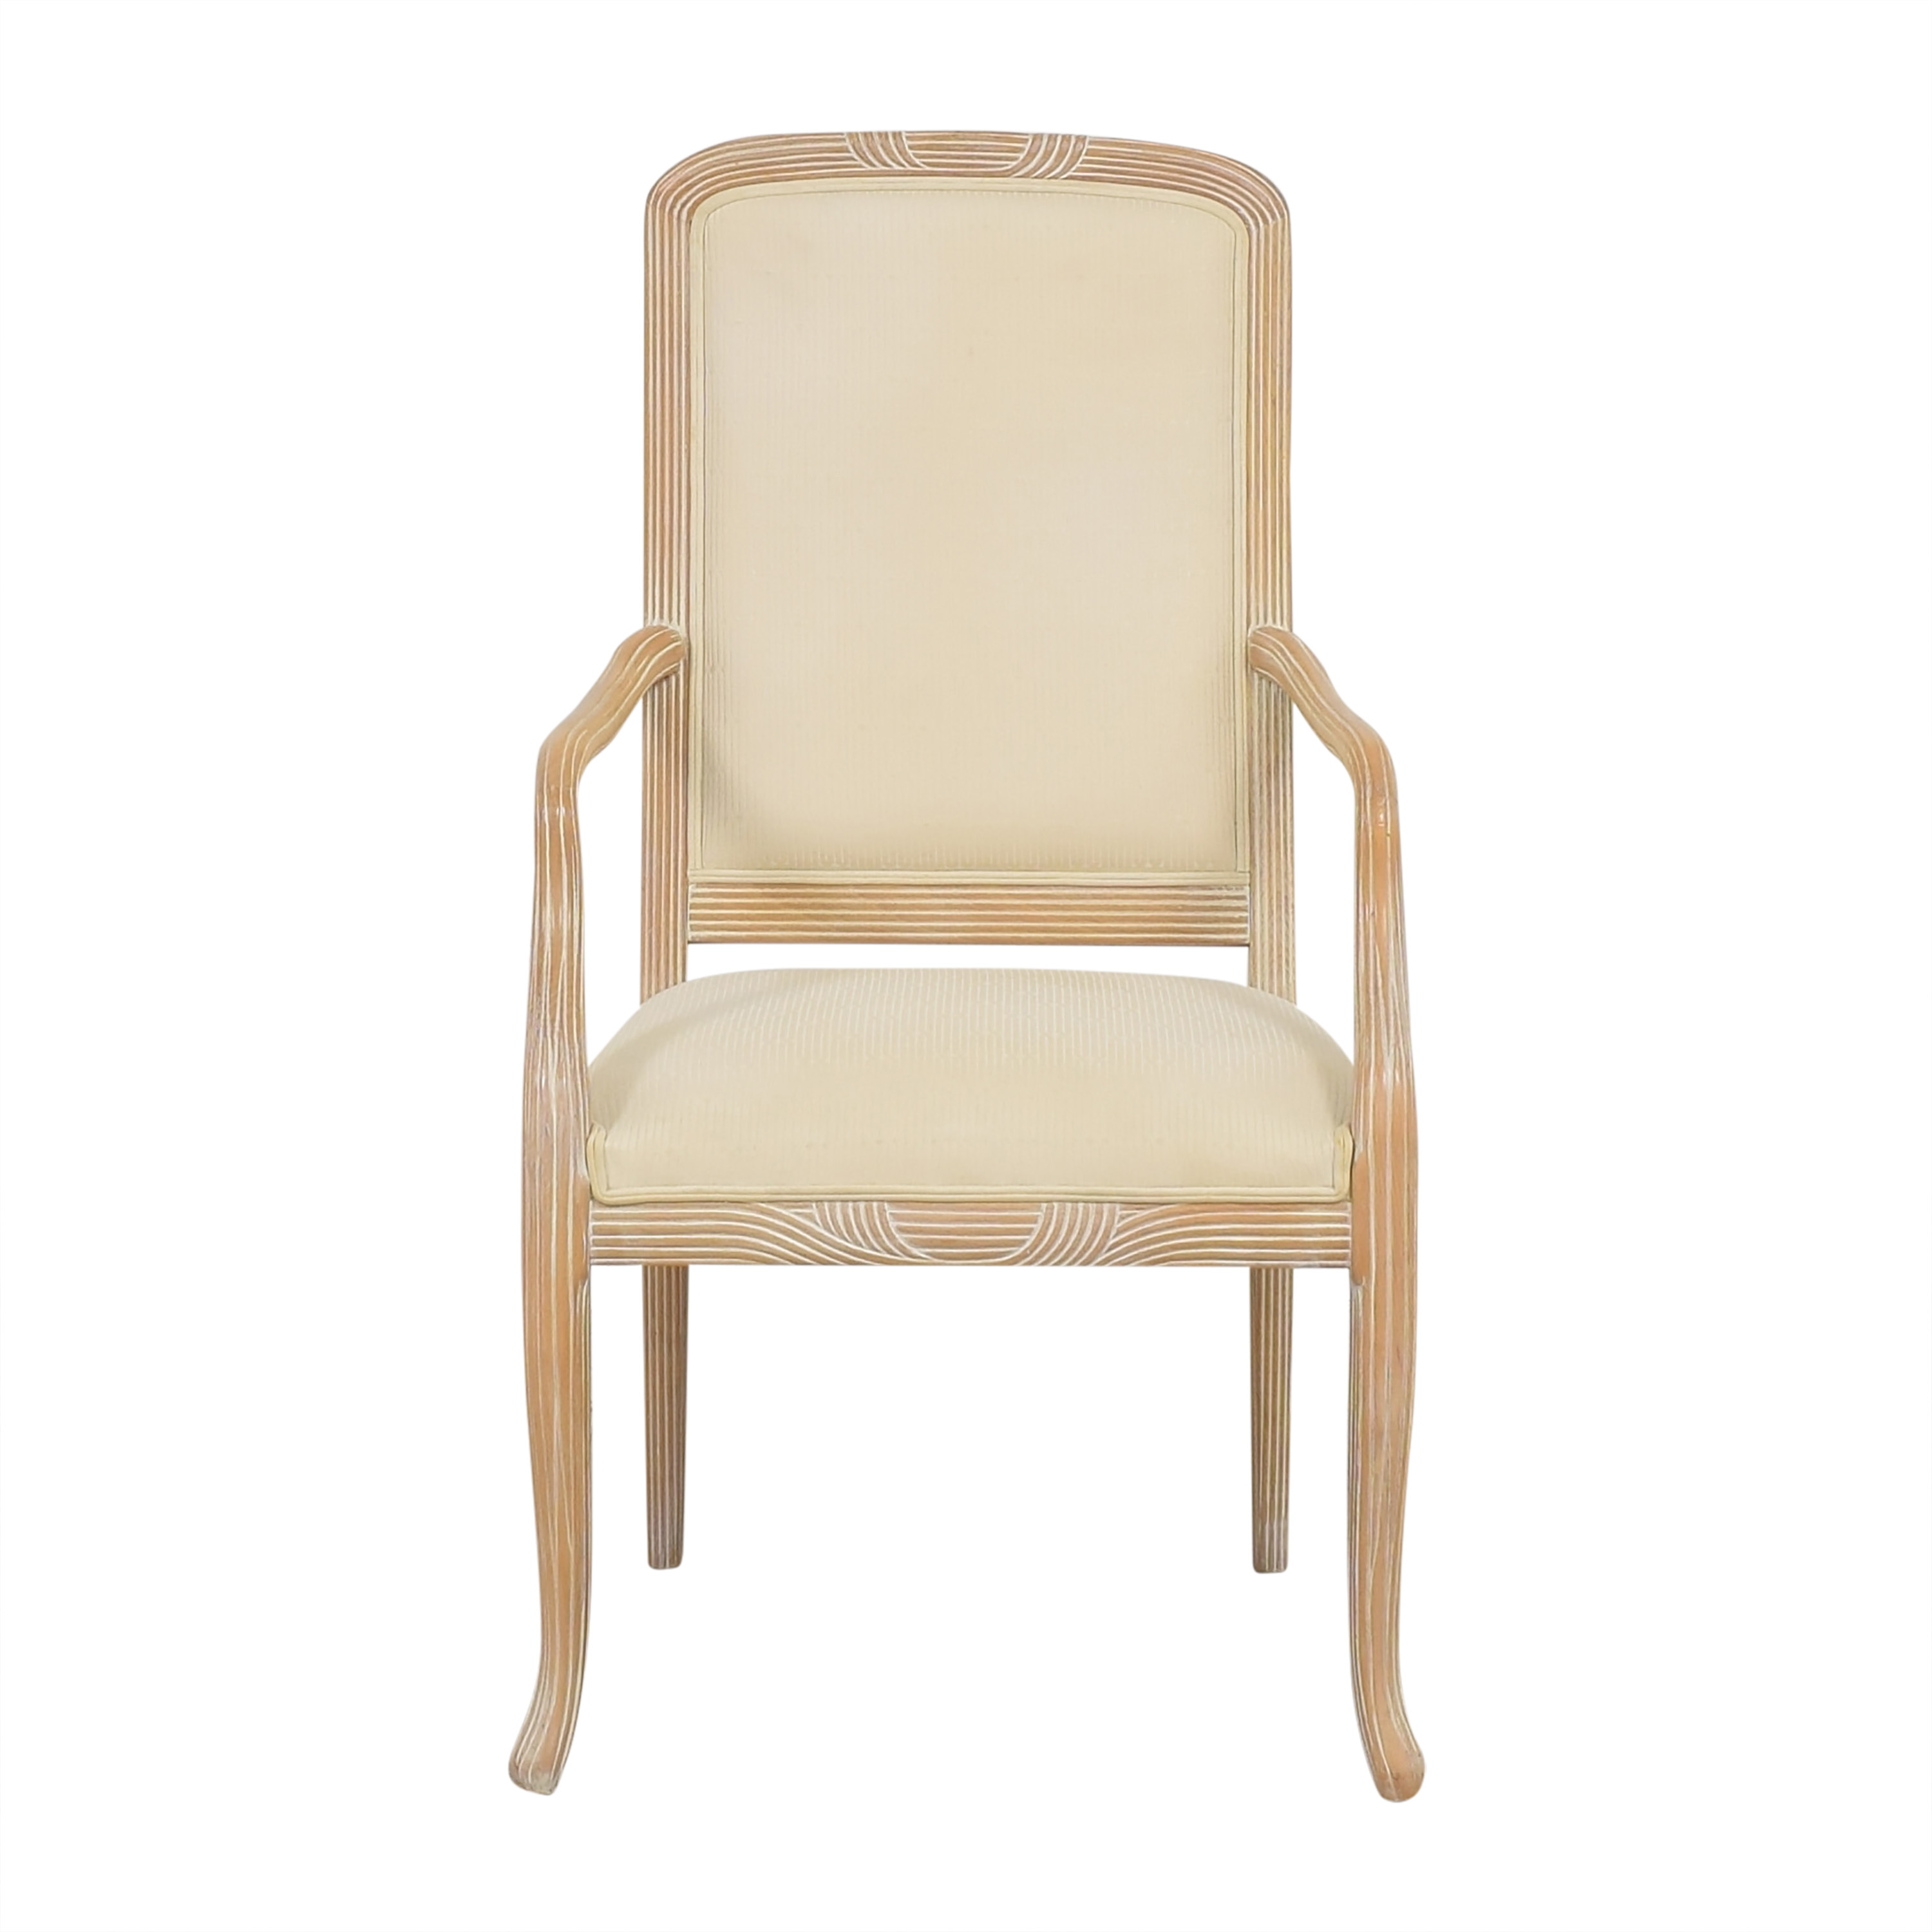 Buying & Design Buying & Design Upholstered Dining Arm Chair pa